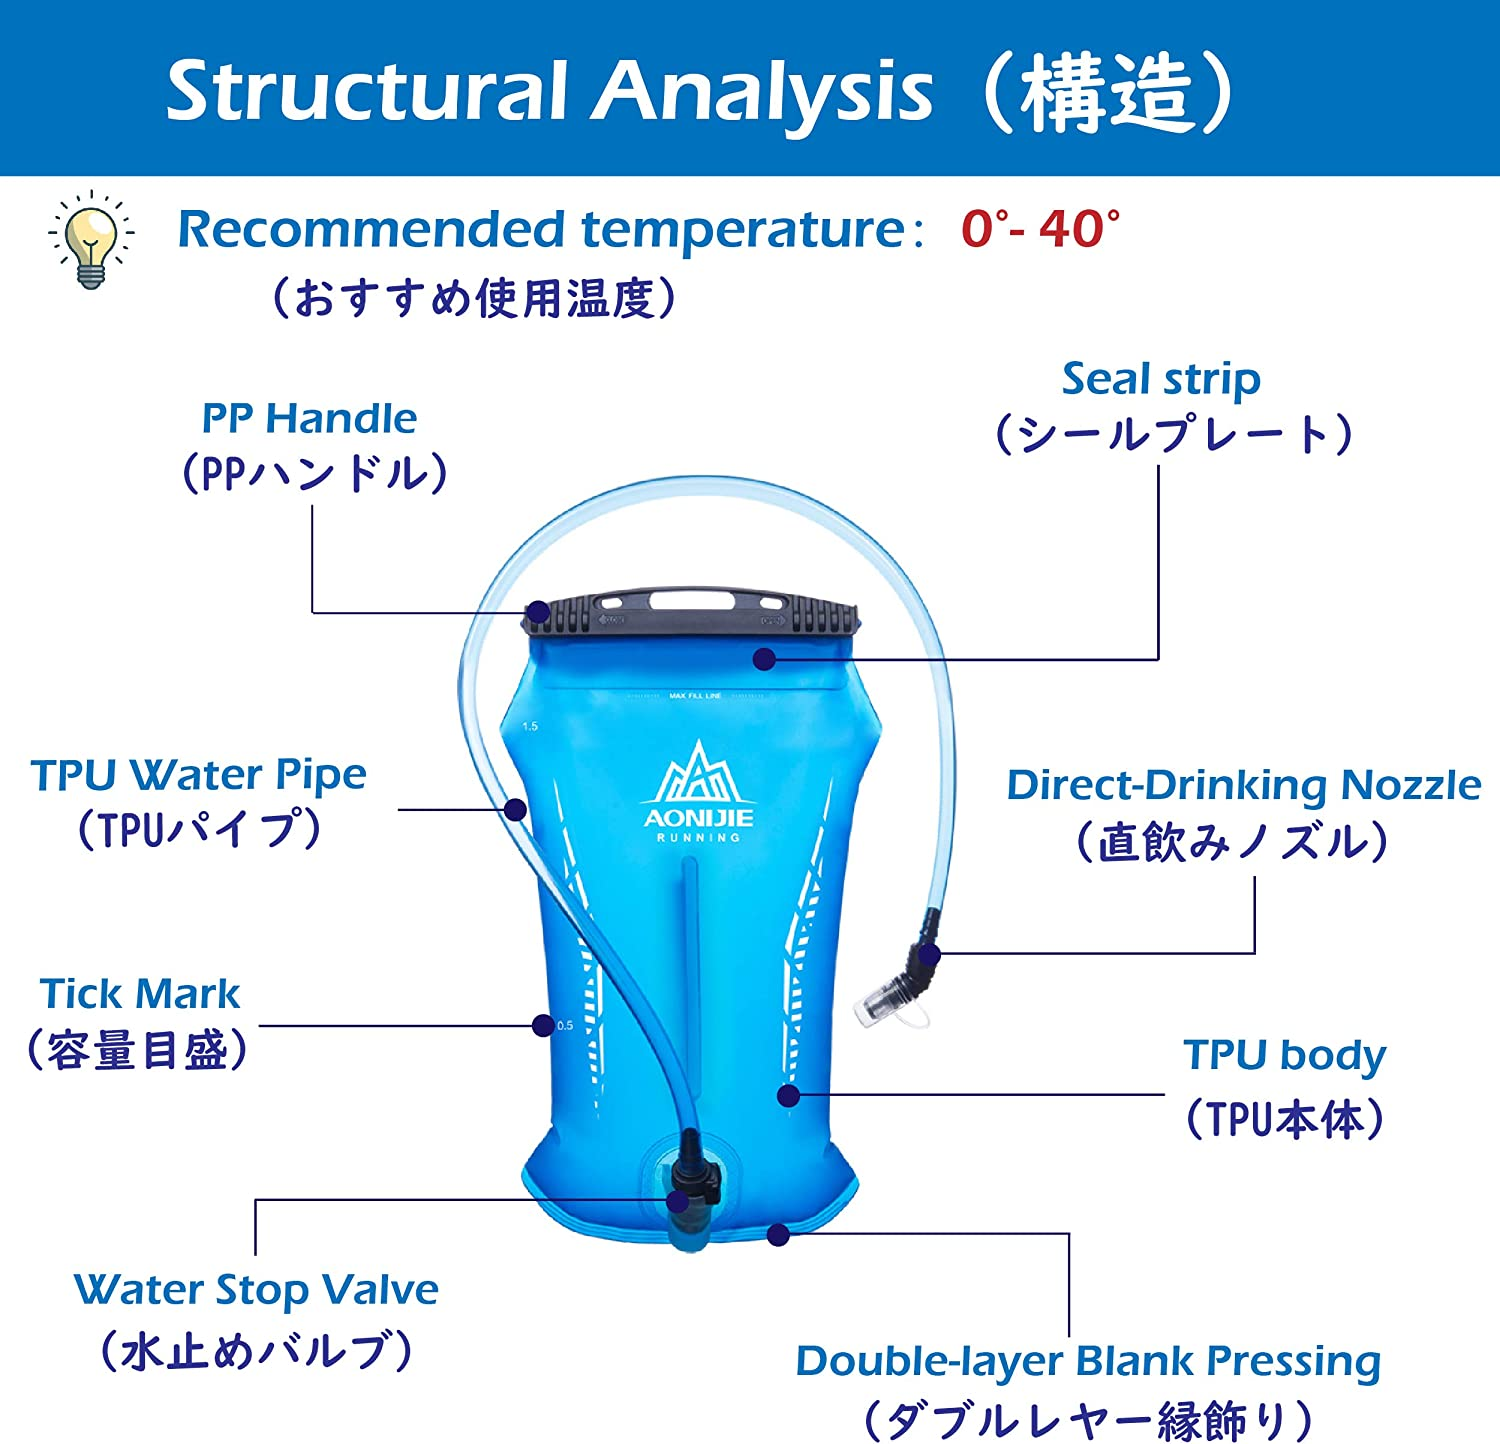 Large Opening BPA Free Hydration Pack Replacement for Hiking Biking Climbing Cycling Running Azarxis Hydration Bladder 1.5L // 2L Leakproof Water Reservoir Water Storage Bladder Bag